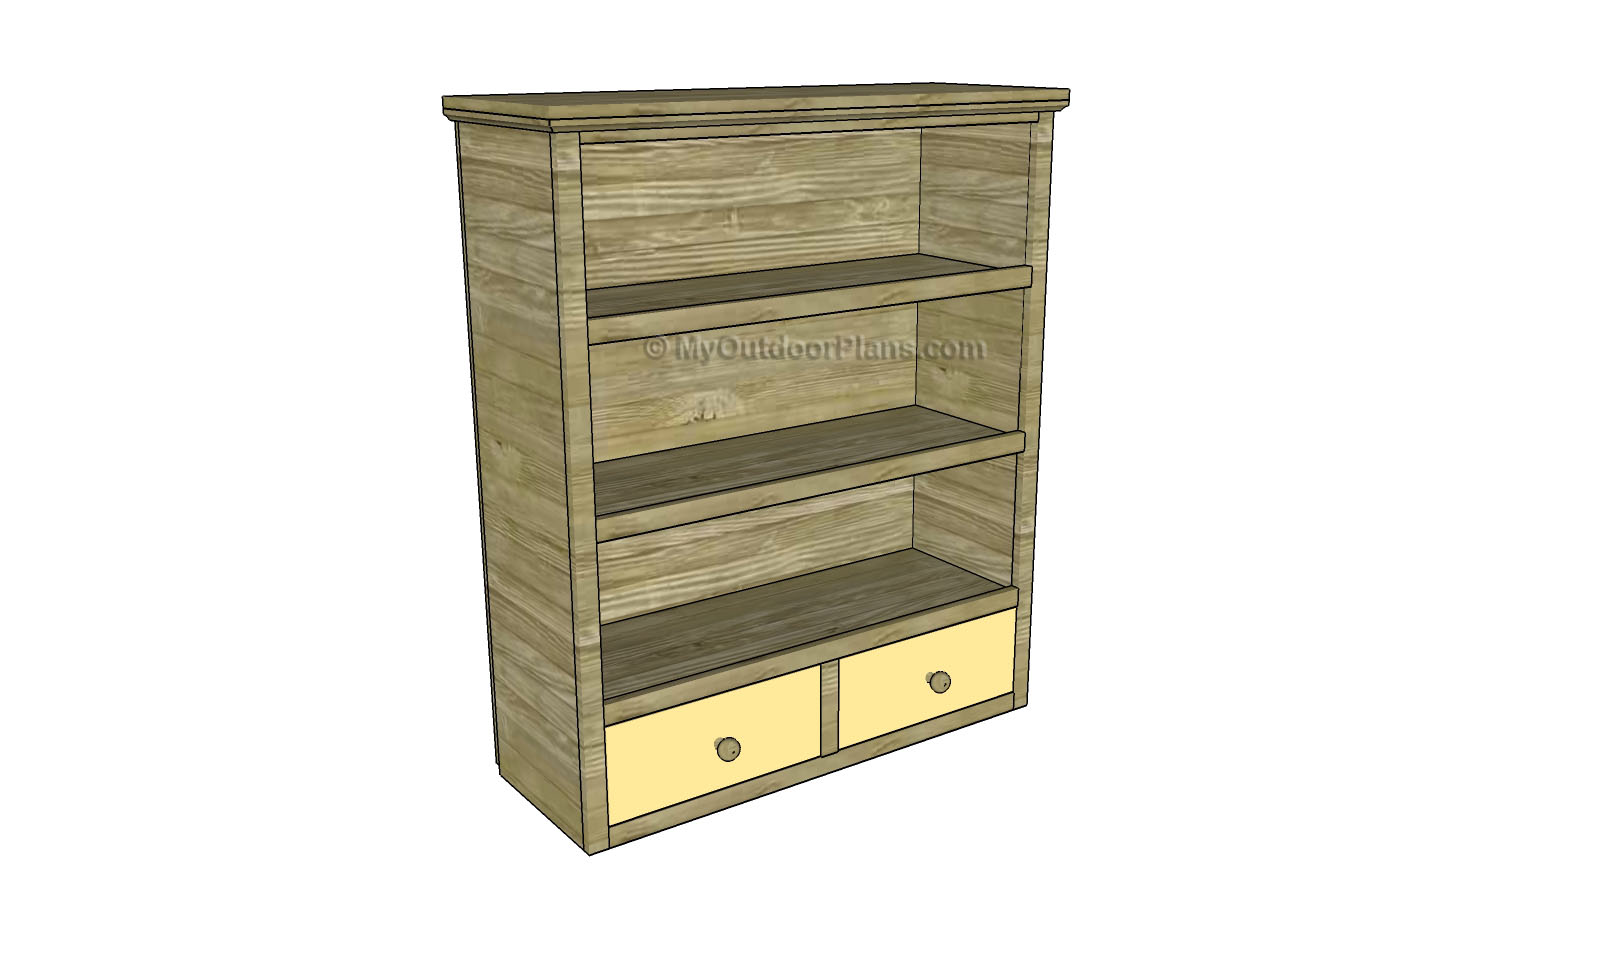 #B39518 Simple Bookcase Plans Free Outdoor Plans DIY Shed Wooden  with 1614x954 px of Brand New Minimalist Bookcase 9541614 pic @ avoidforclosure.info